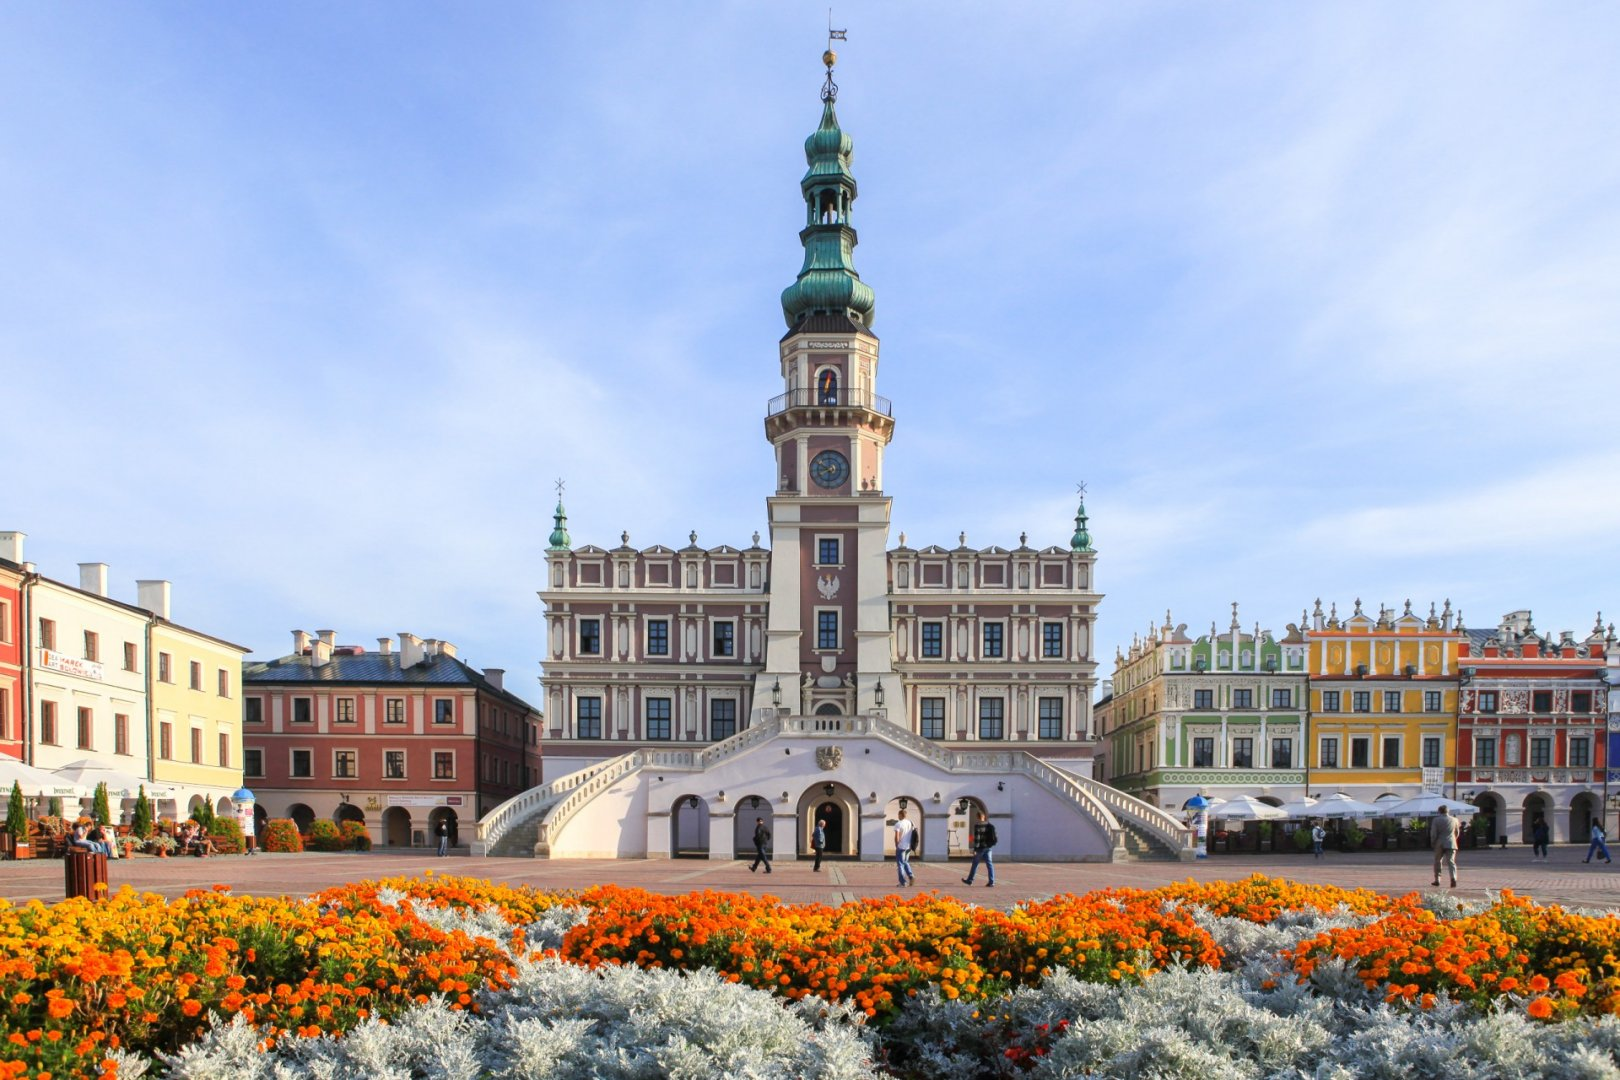 UNESCO World Heritage List Attractions in Poland